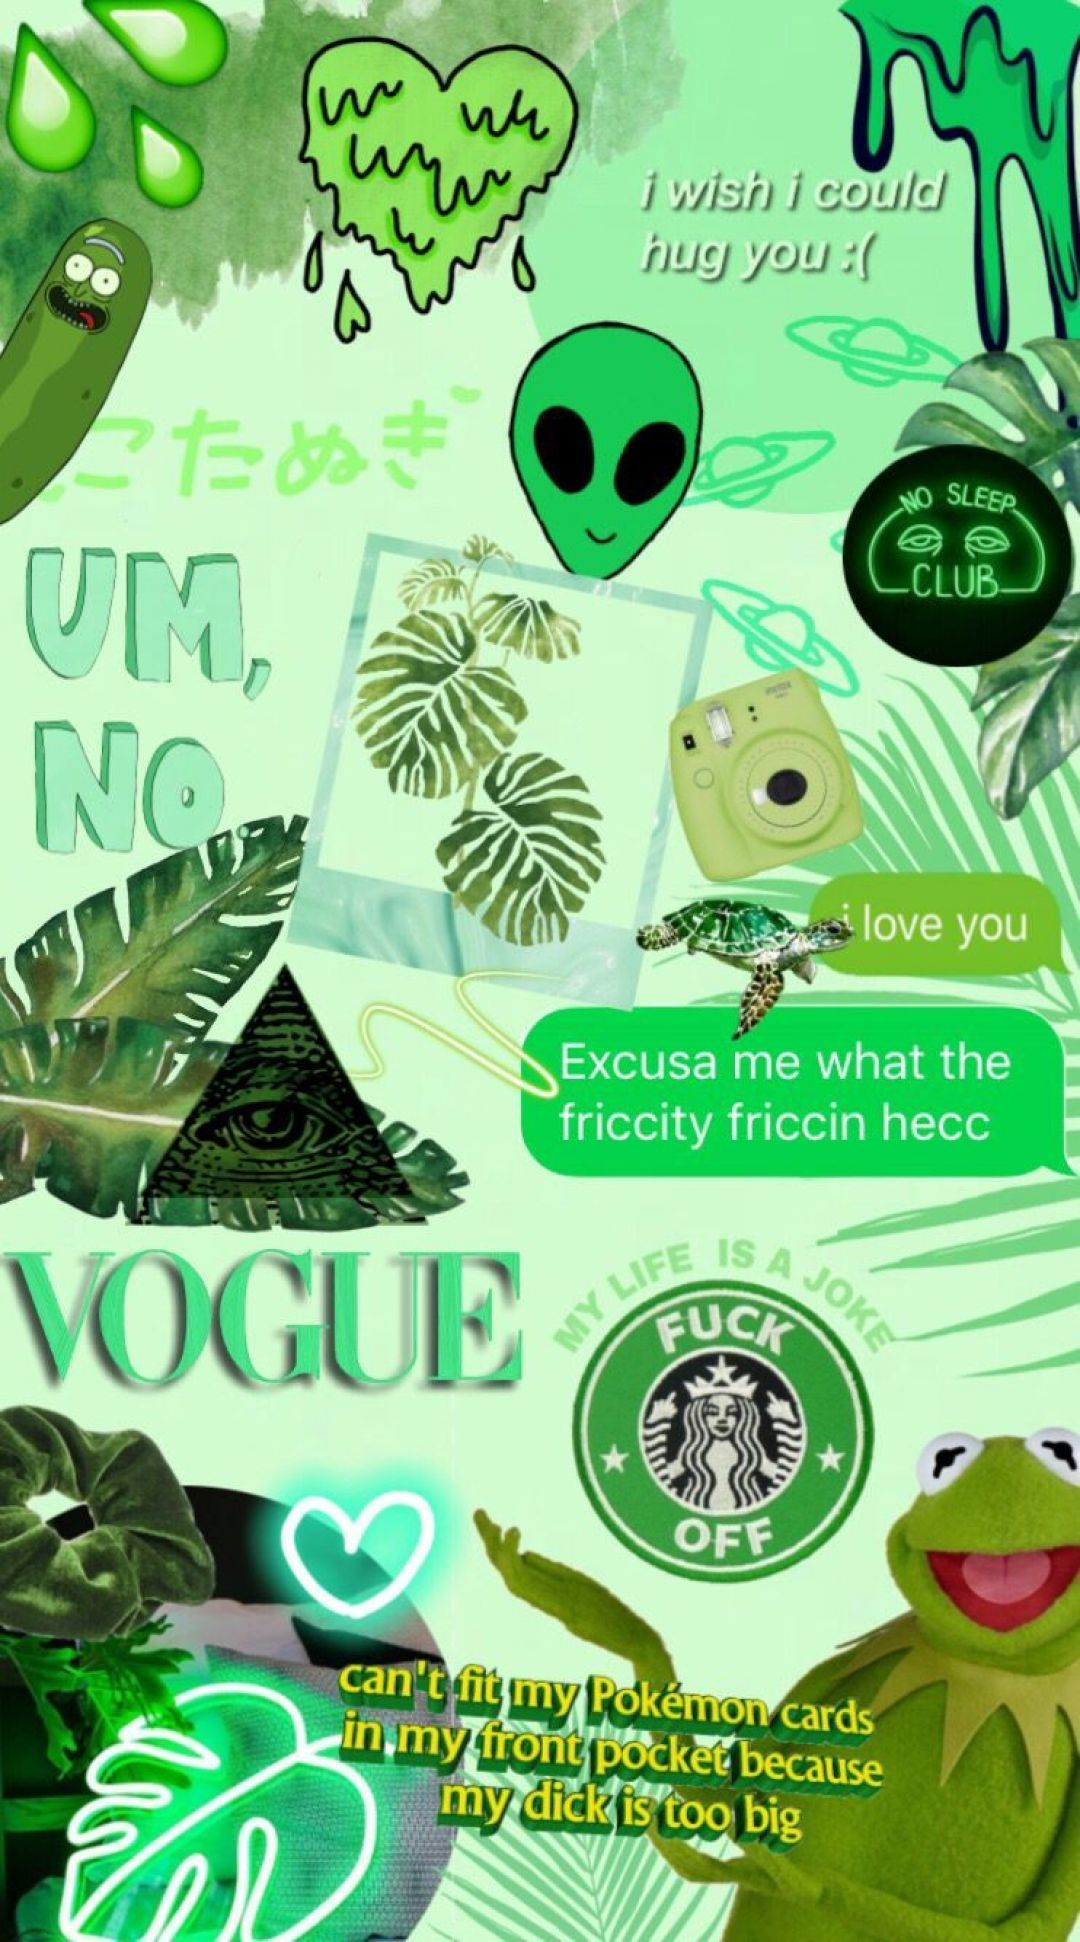 Meme Aesthetic Android Iphone Desktop Hd Backgrounds Wallpapers 1080p 4k 100835 Hdwa Green Aesthetic Tumblr Iphone Wallpaper Green Green Aesthetic